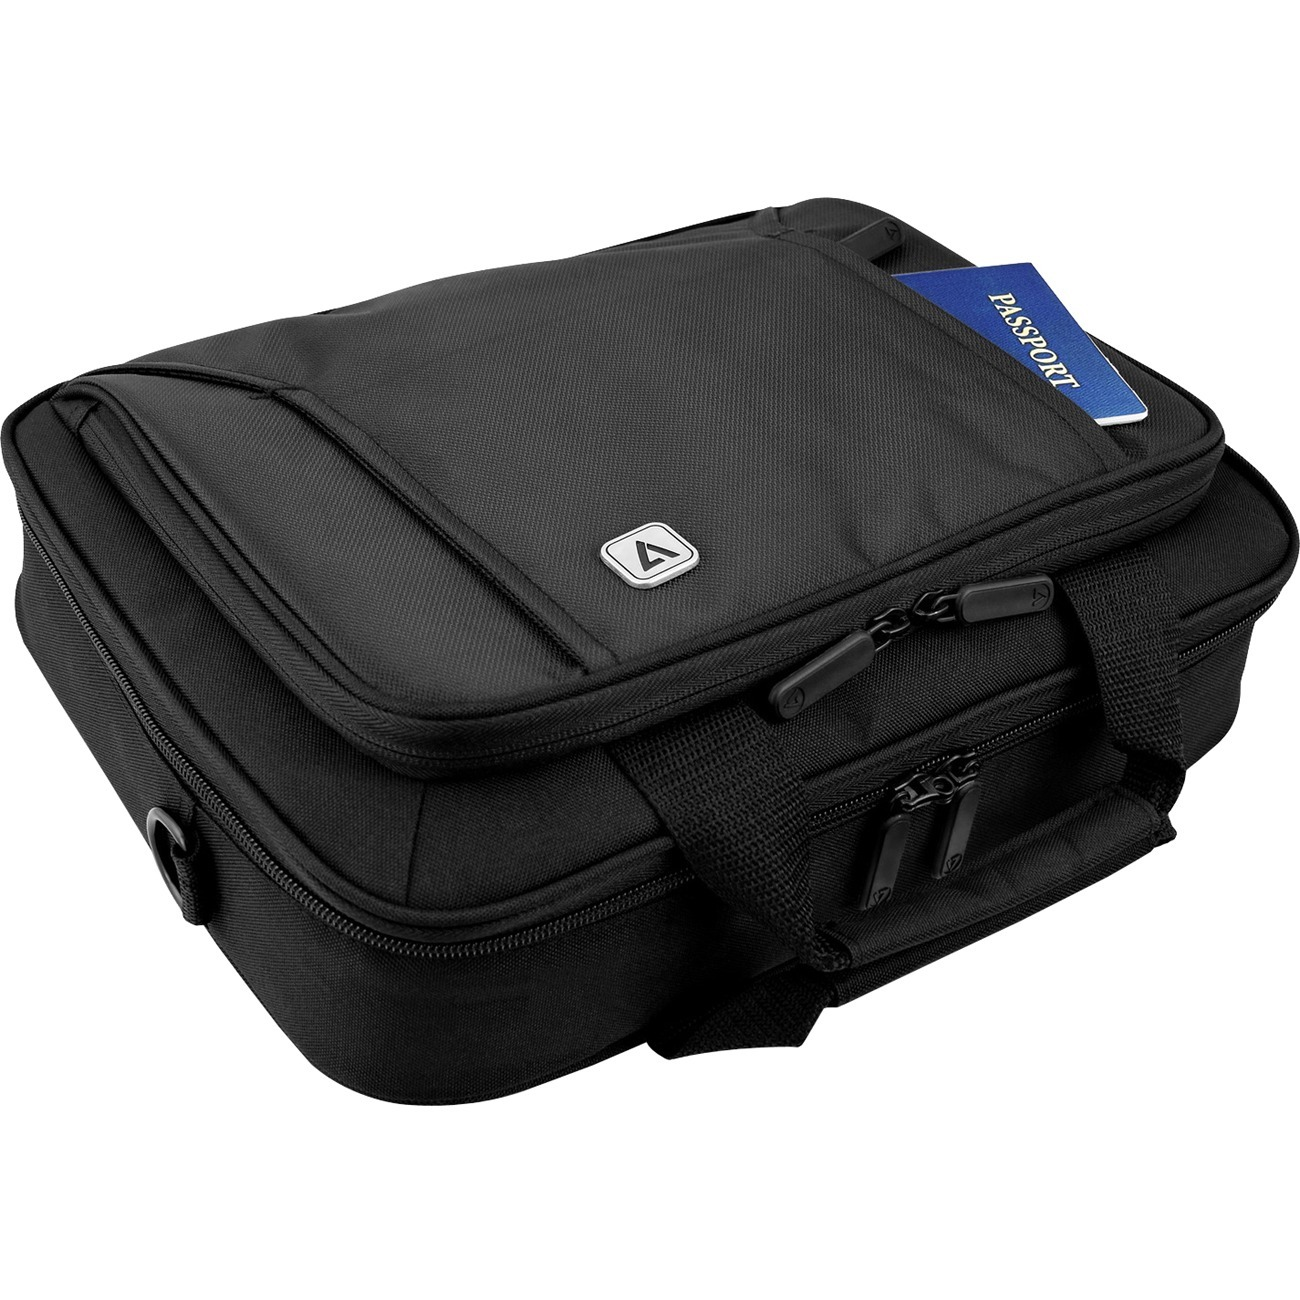 V7 PROFESSIONAL CCP13-BLK-9E Carrying Case for 33.8 cm 13.3inch Notebook - Black